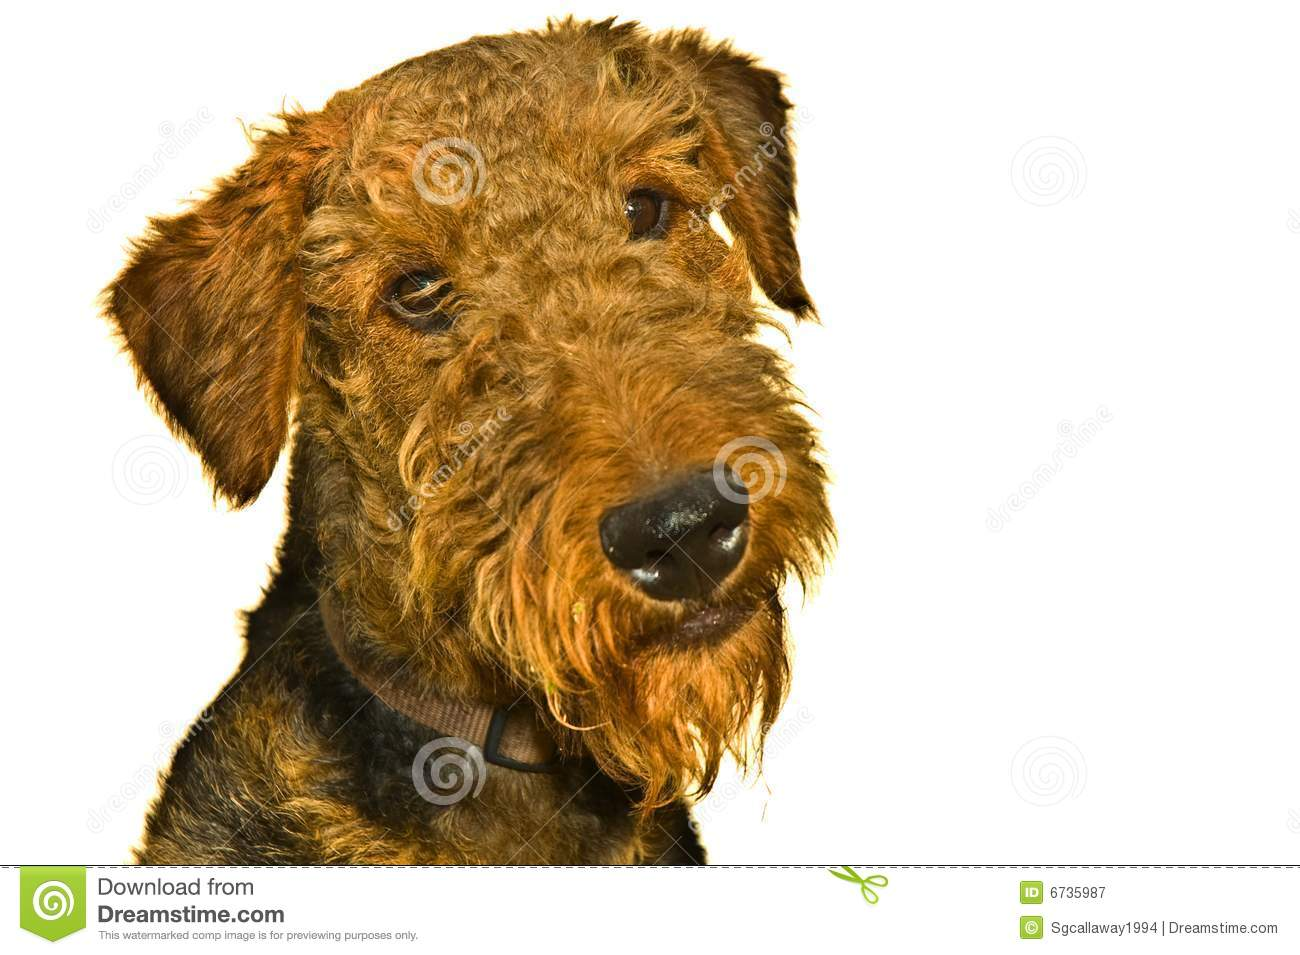 Airedale terrier dog curious expression isolated